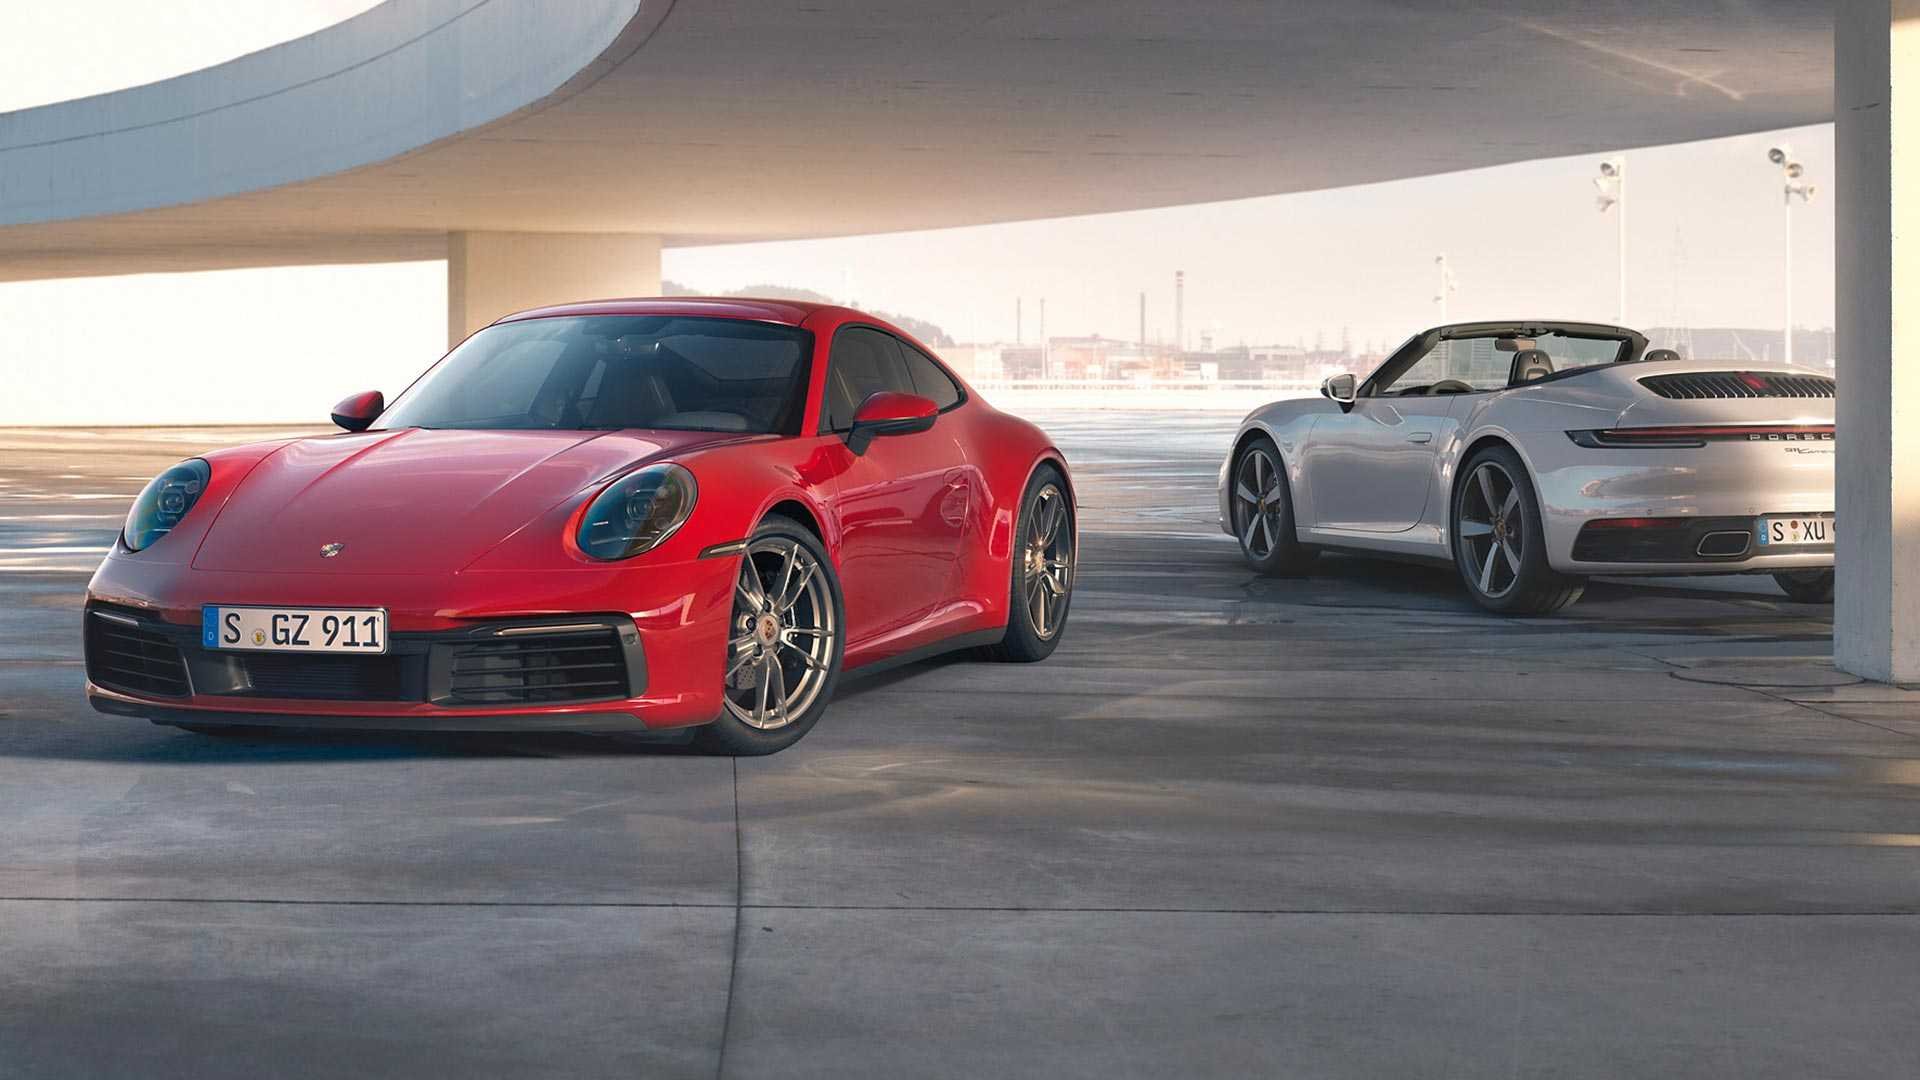 The most affordable Porsche 911 Carrera sports car series will now ship with a new all-wheel-drive system as a standard feature